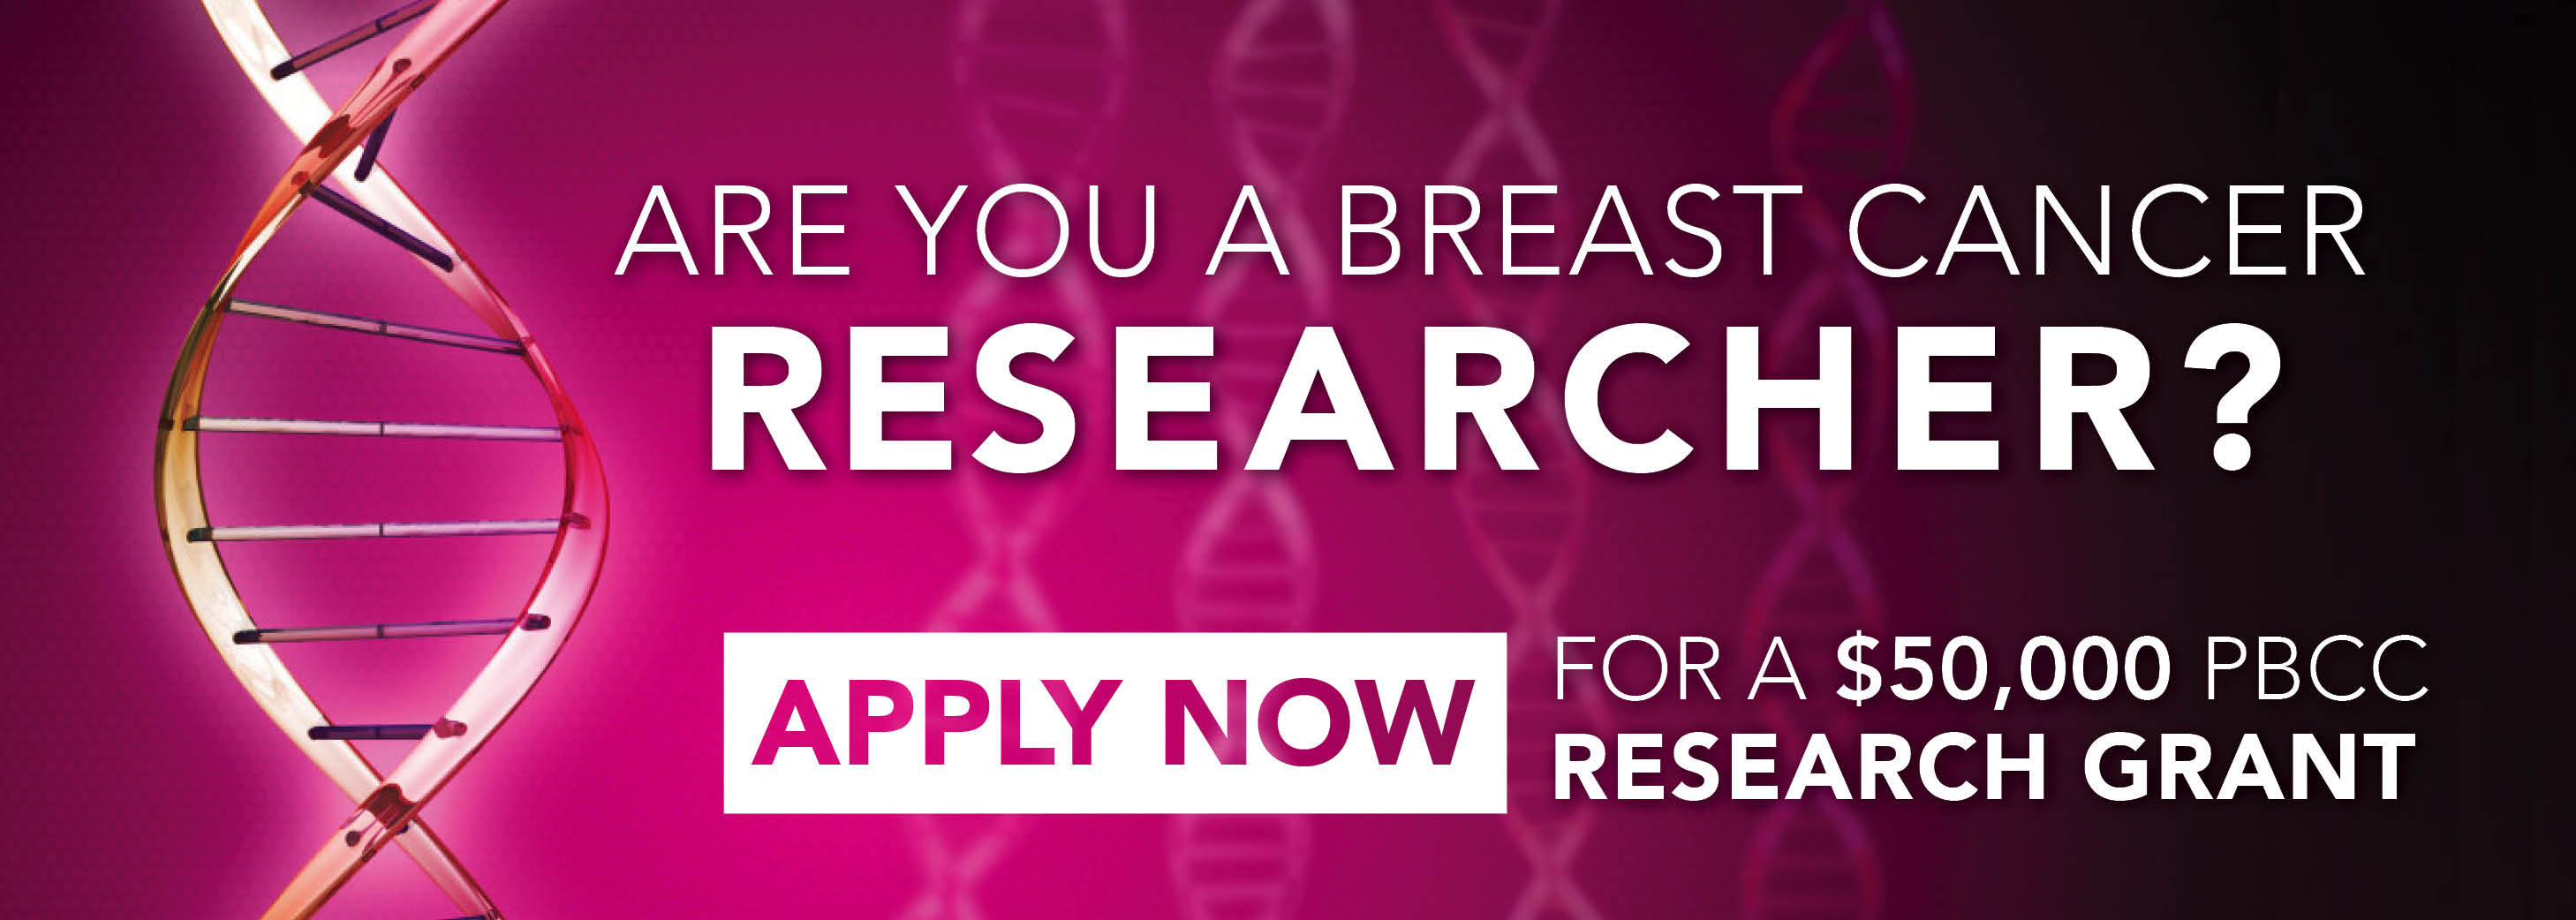 Breast Cancer Research Grant Application